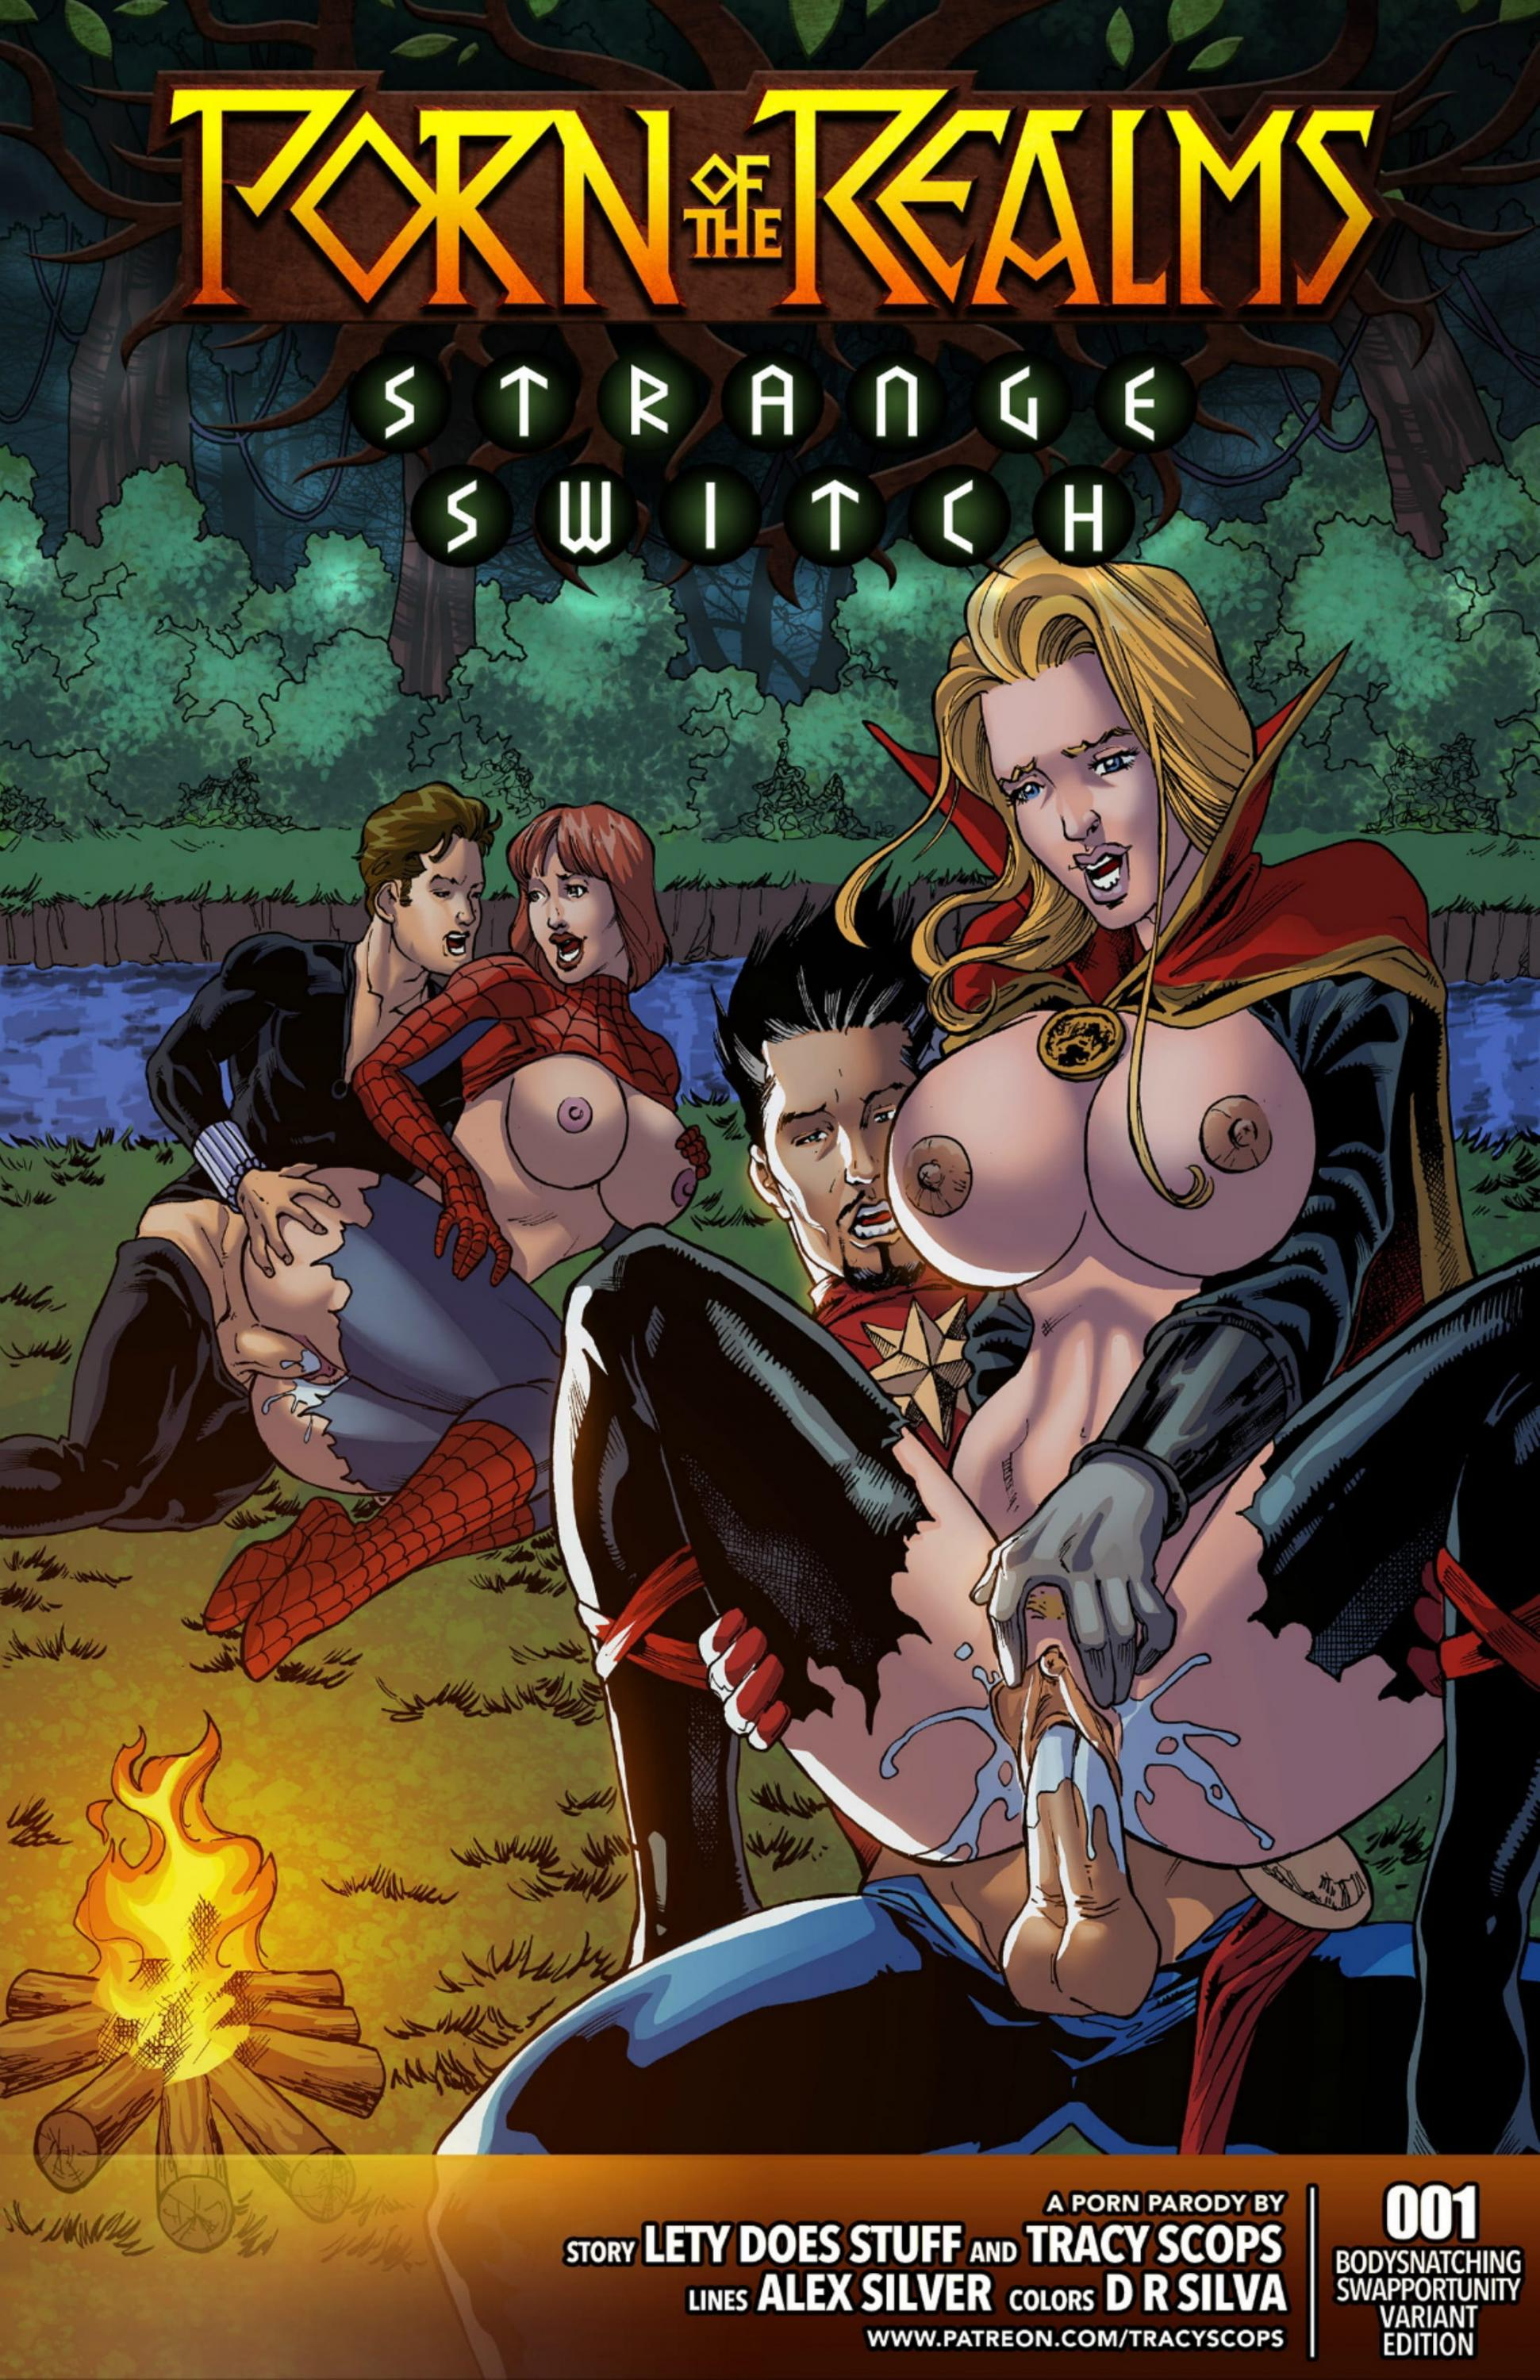 SureFap xxx porno Spider-Man - [Tracy Scops] - Porn of the Realms: Strange Switch